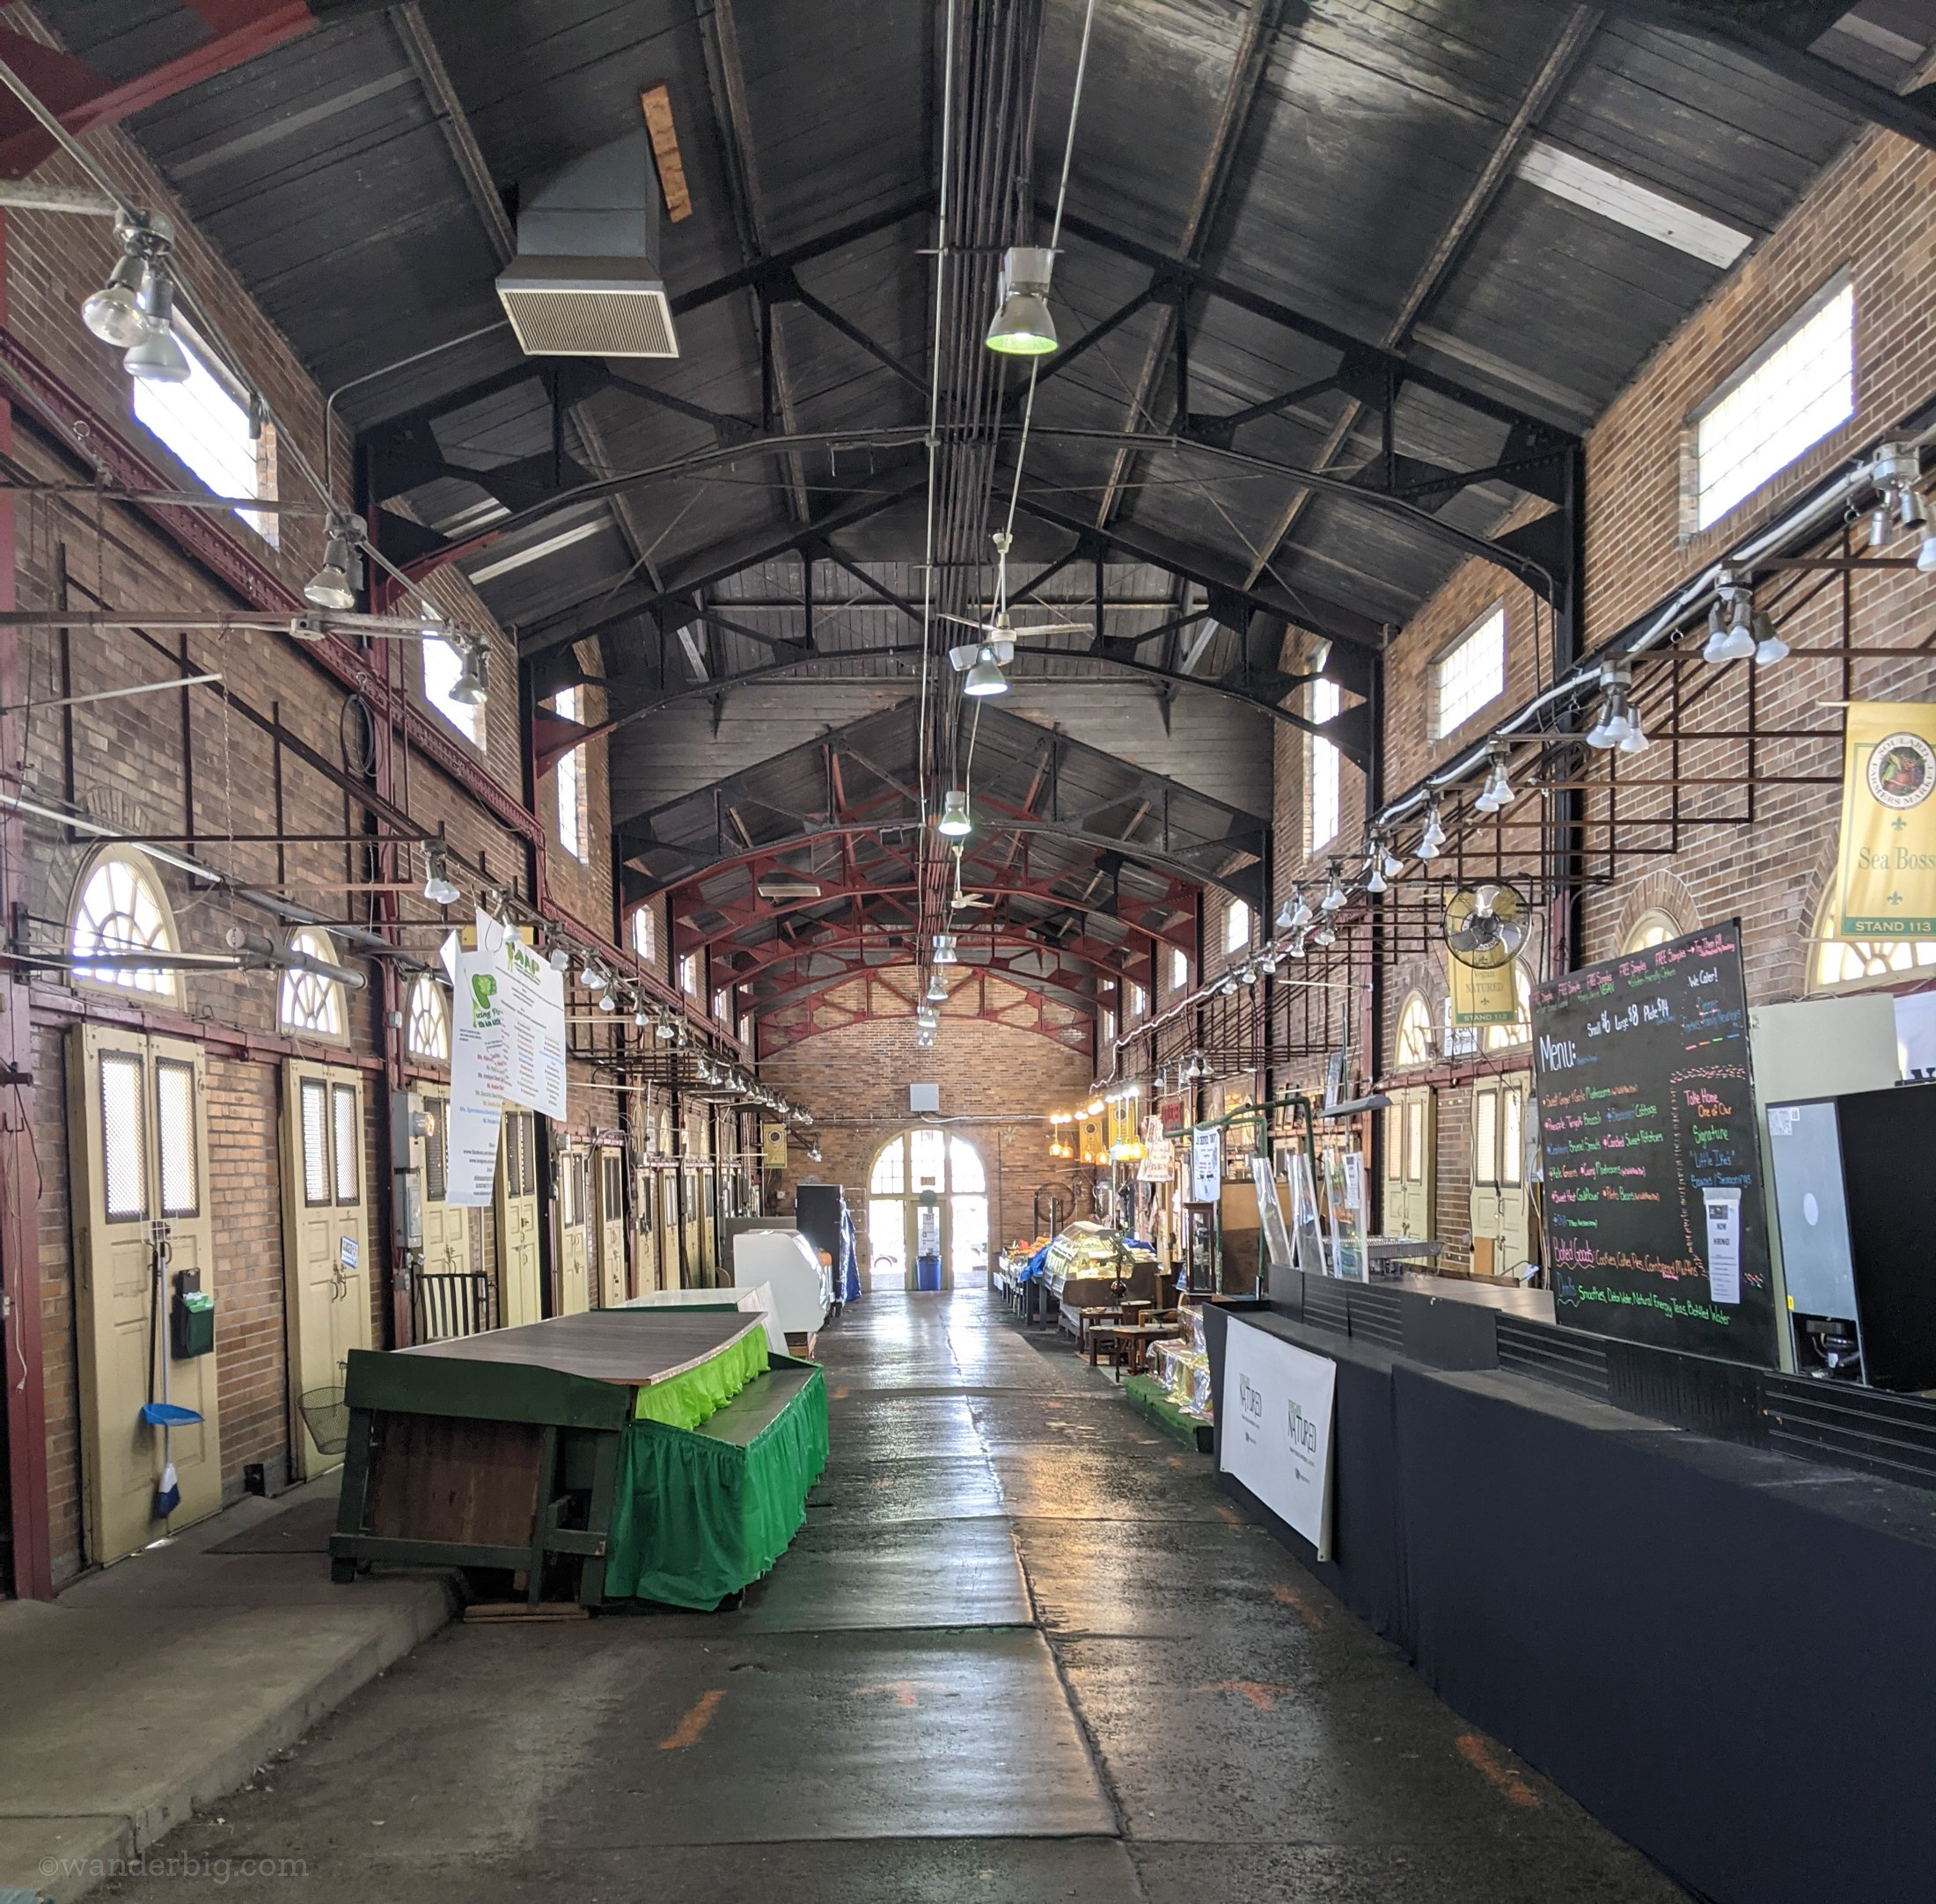 Soulard market's vendors hall, empty on a friday afternoon.